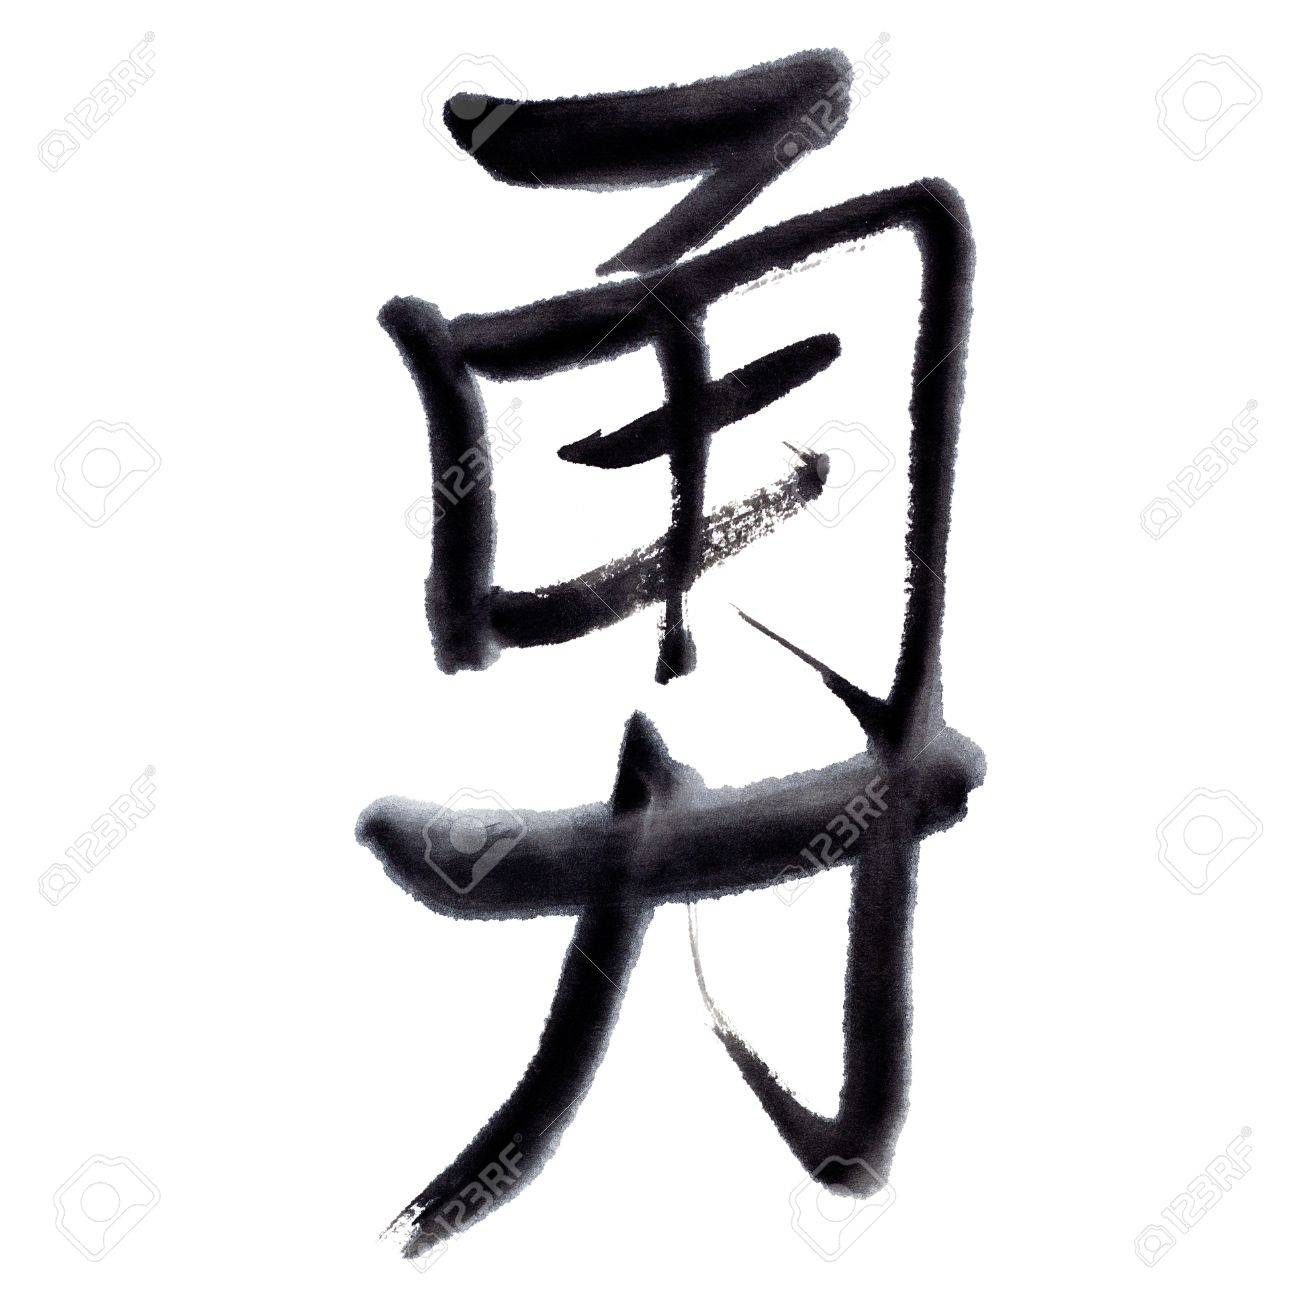 Courage Traditional Chinese Calligraphy Art Isolated On White